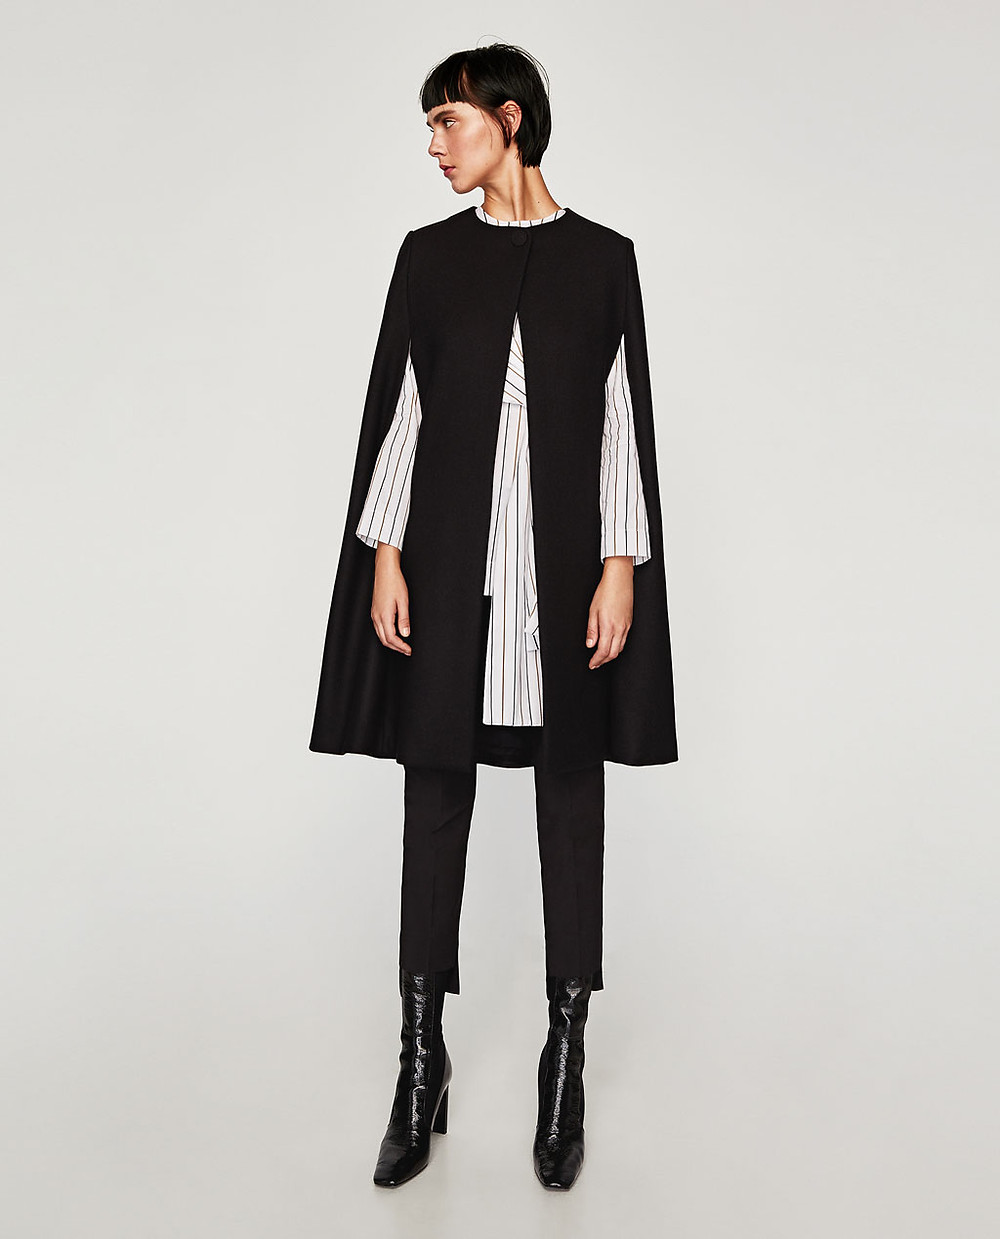 Zara Long Cloth Cape $149